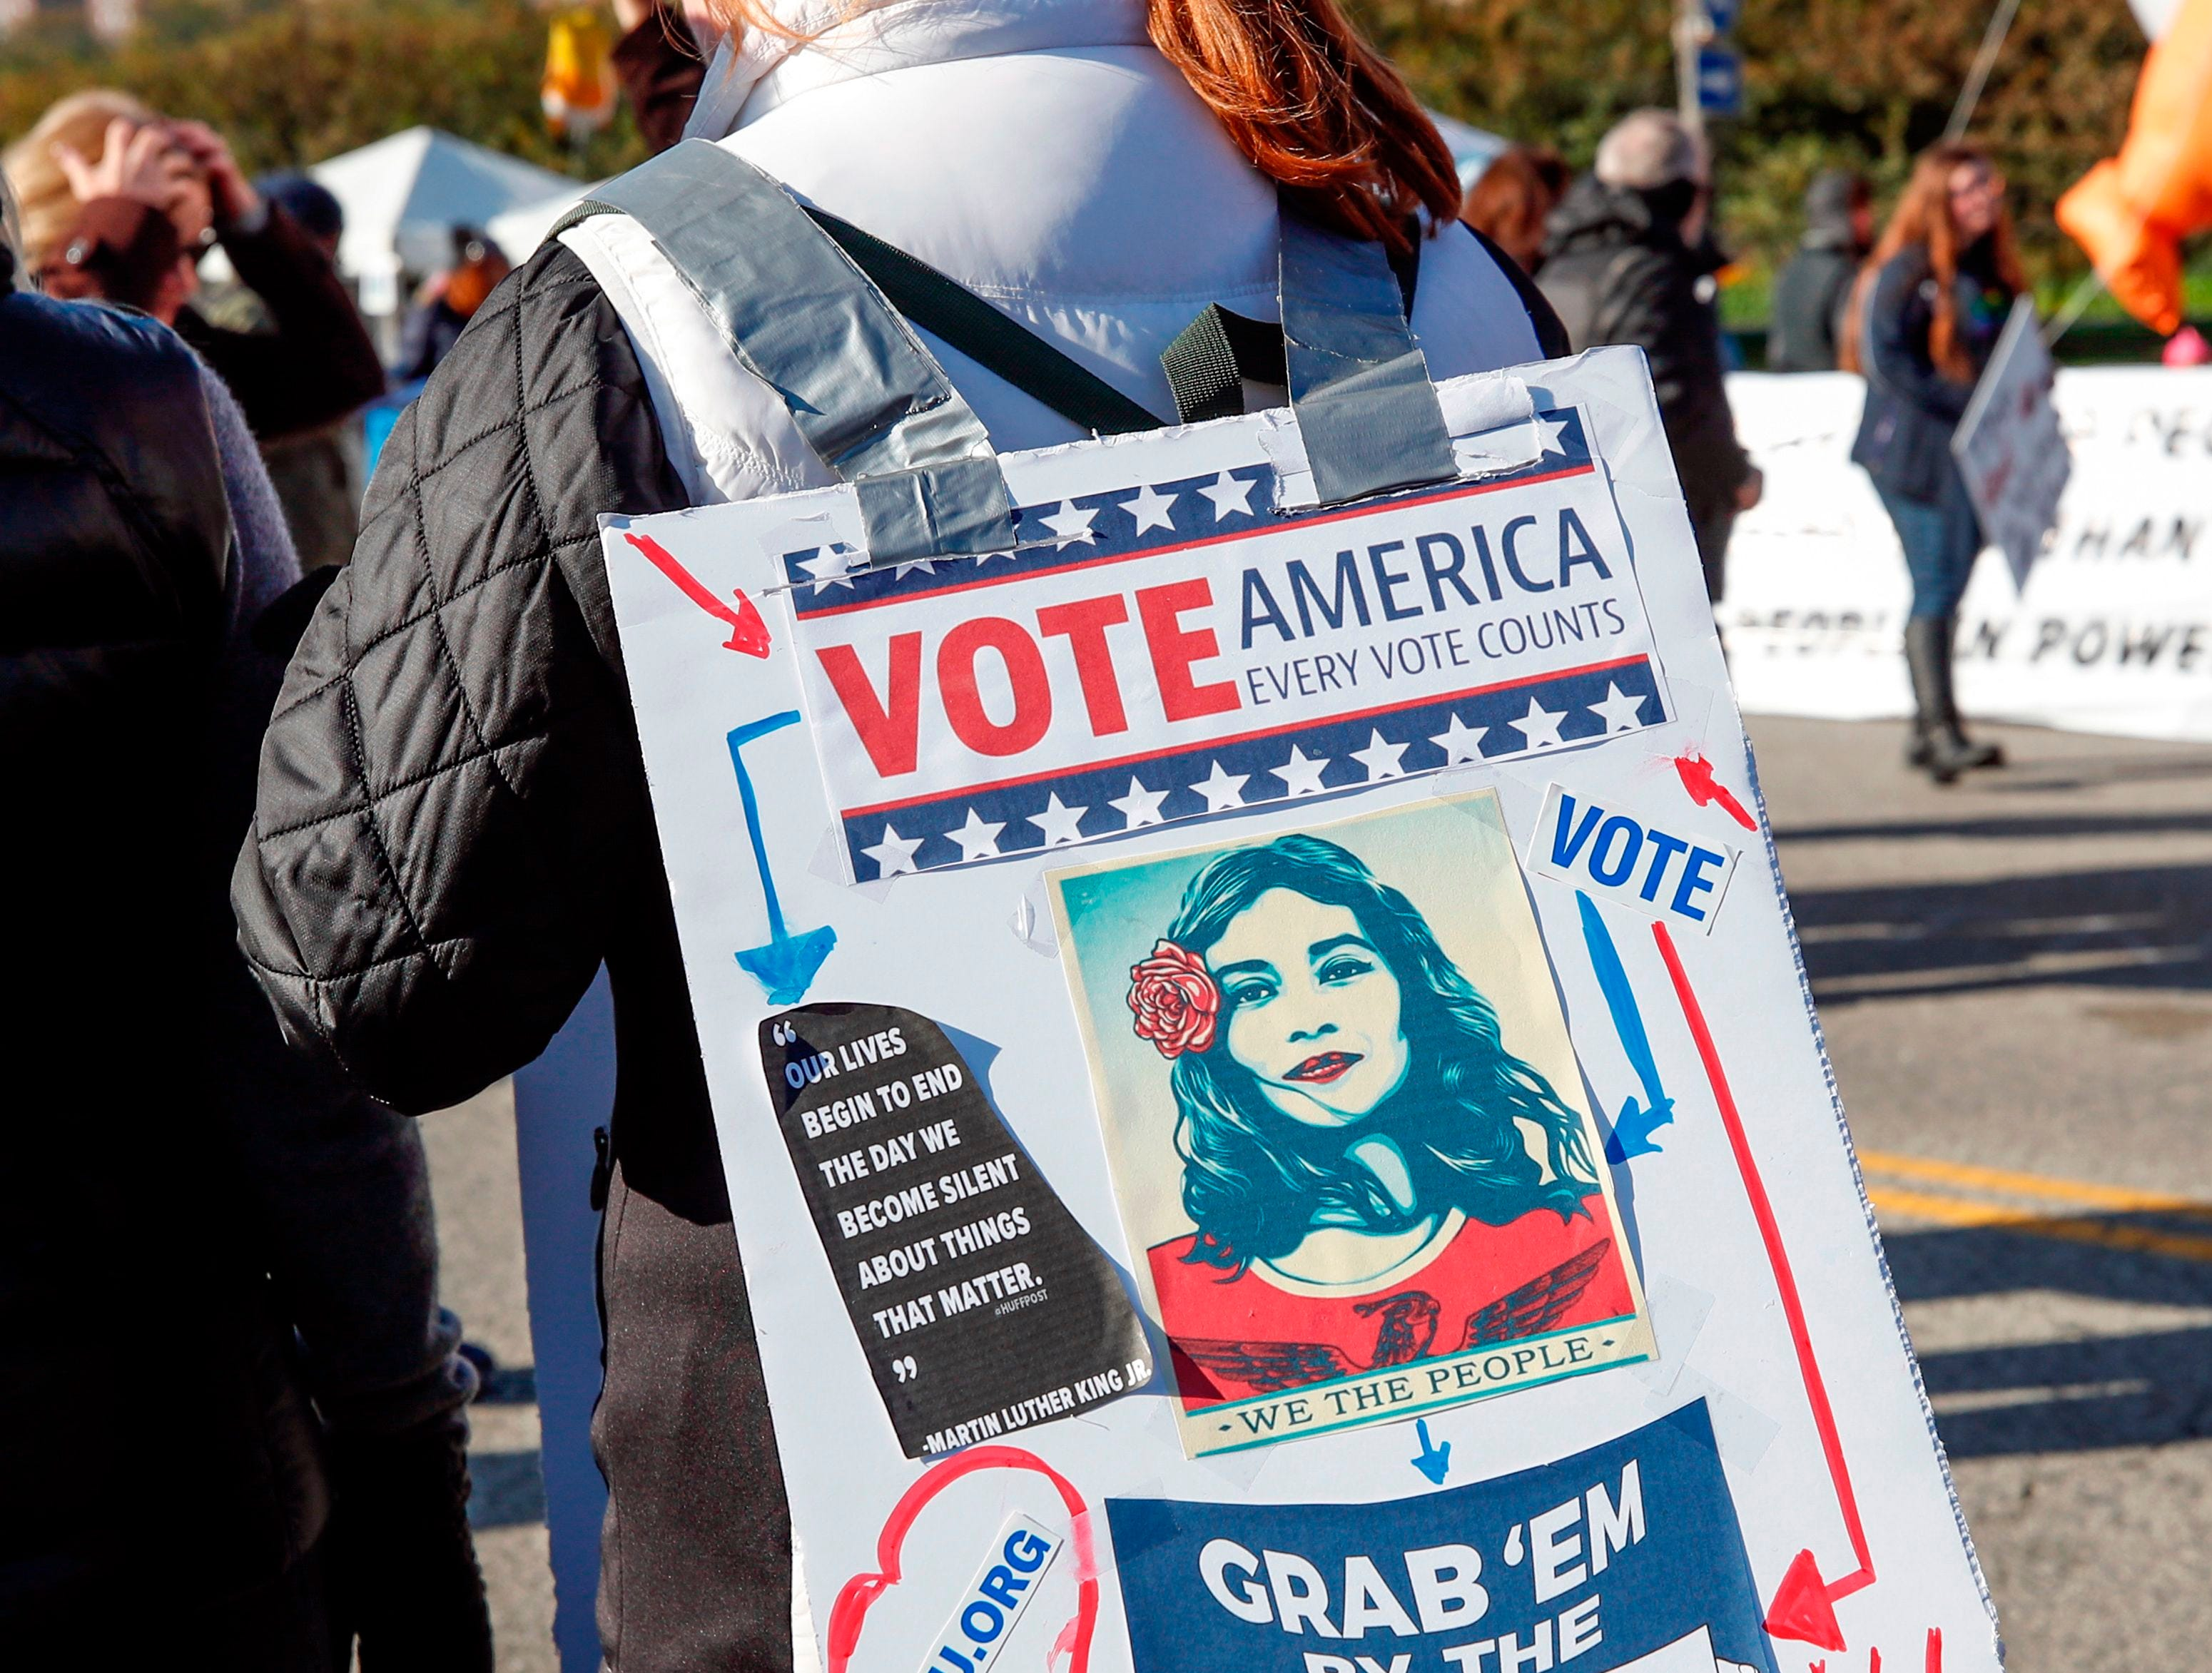 Women gather for a rally and march at Grant Park on Oct. 13, 2018 in Chicago, Ill. to inspire voter turnout ahead of midterm polls in the United States.